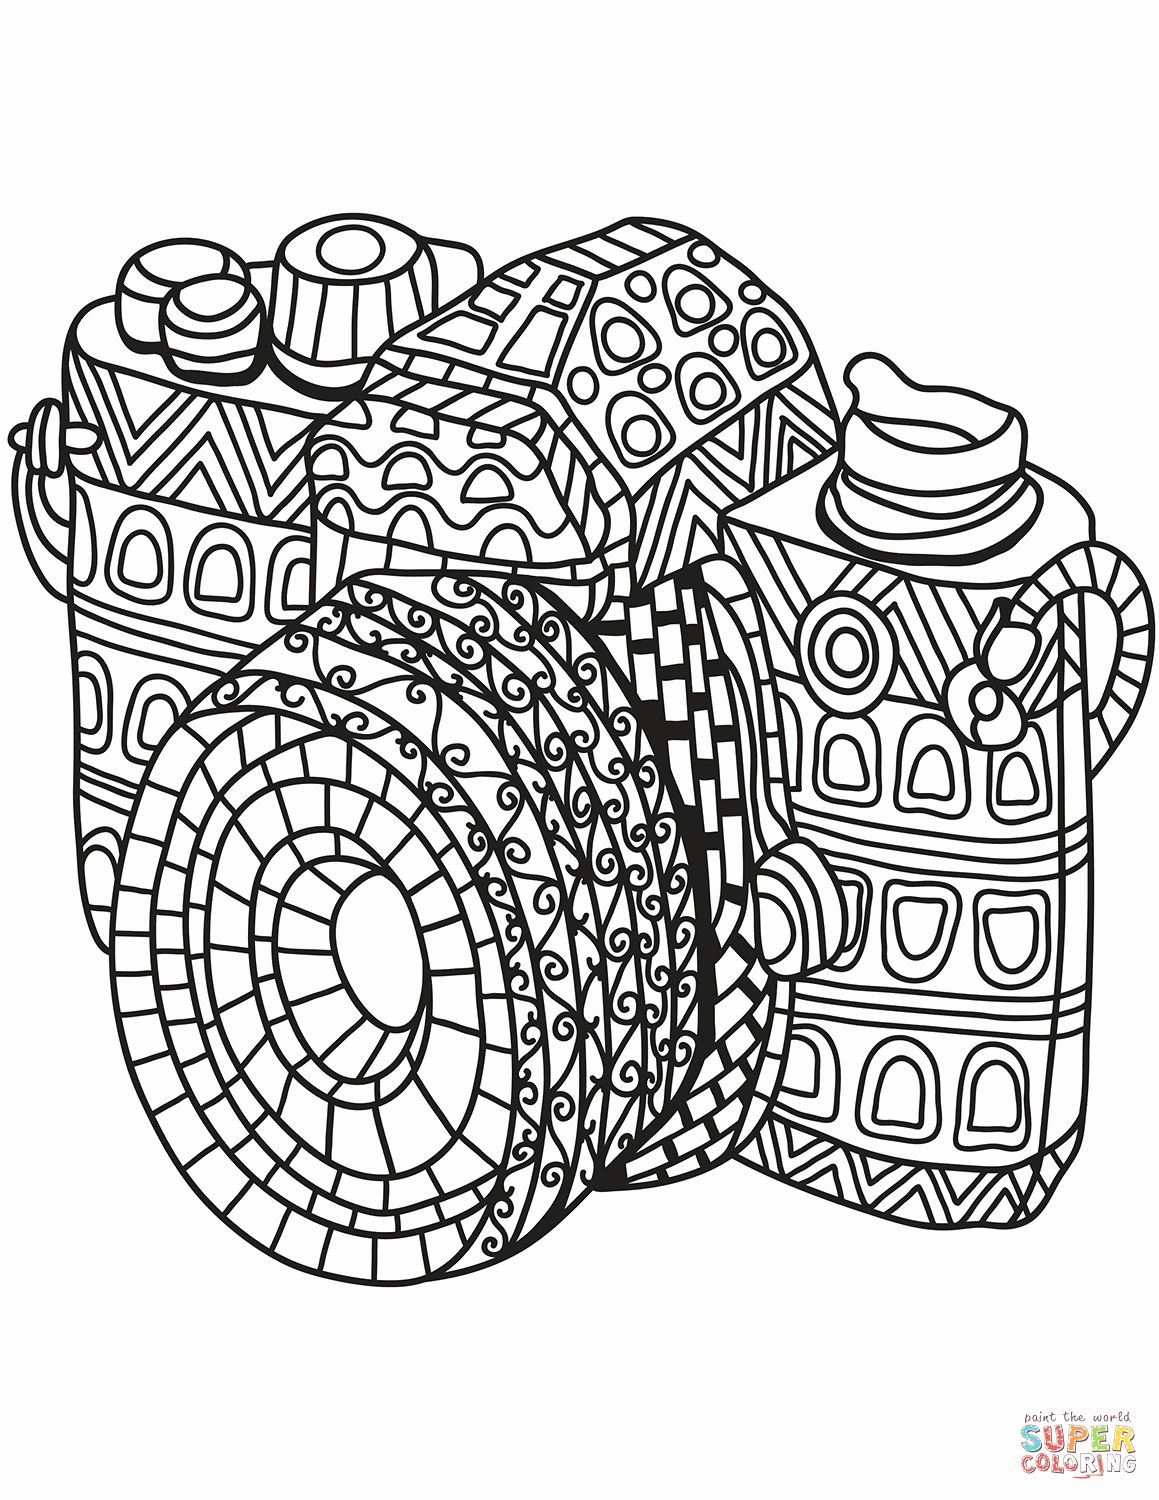 Easy Coloring Book For Adults New Zentangle Camera Coloring Page Coloring Books Coloring Pages Printable Coloring Pages